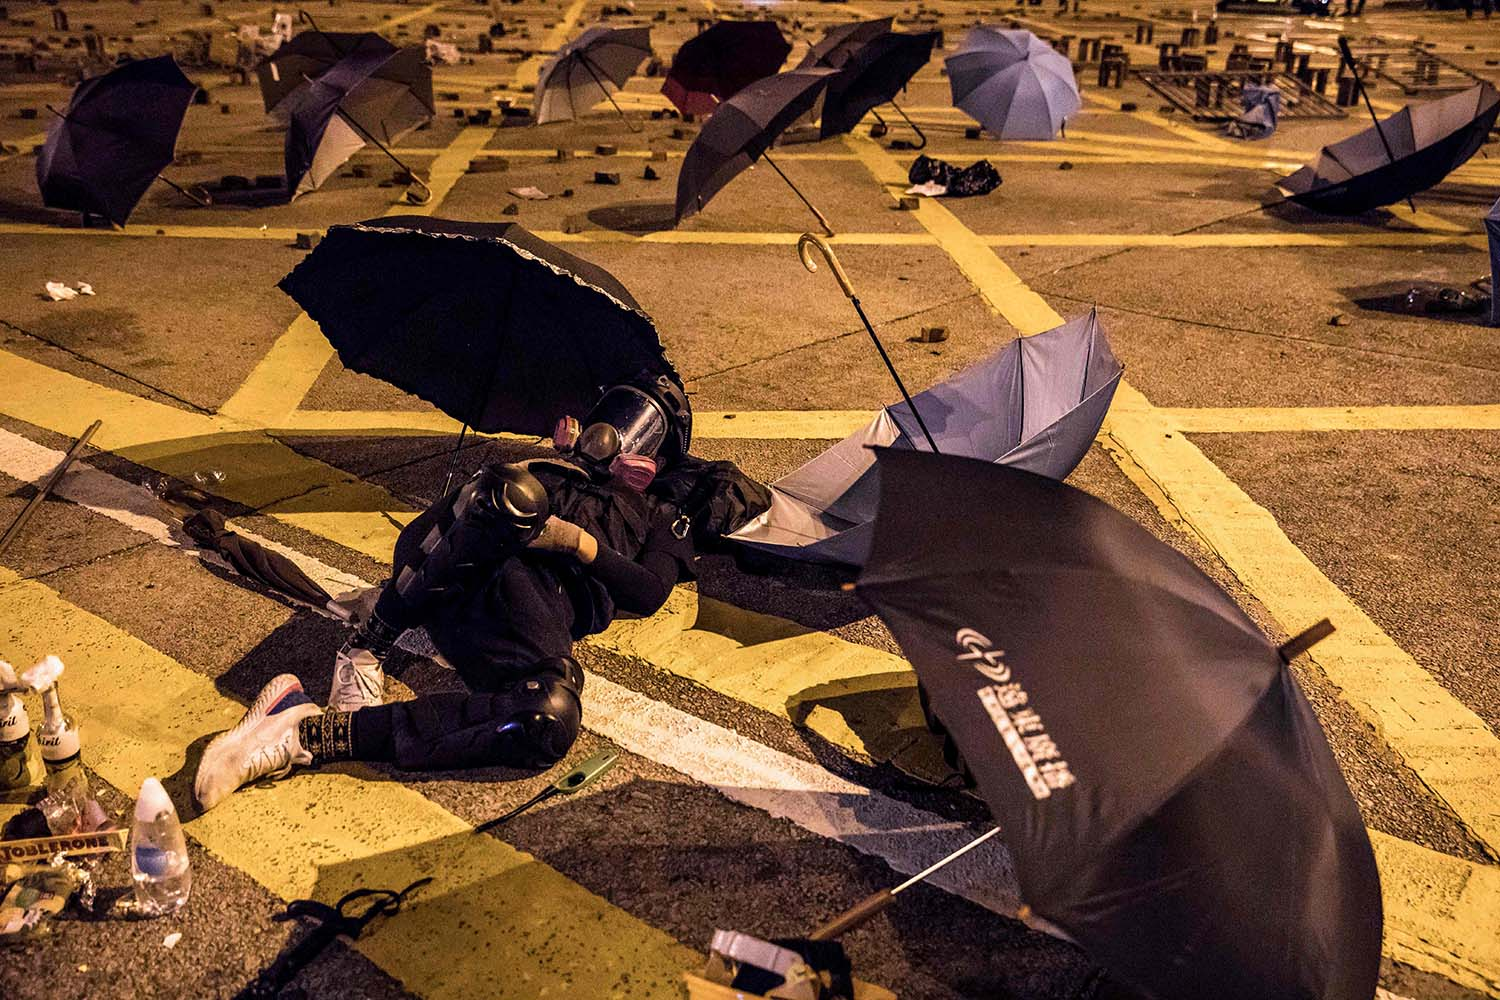 A protester rests on the ground on a blocked road at the Hong Kong Polytechnic University on Nov. 14. DALE DE LA REY/AFP via Getty Images